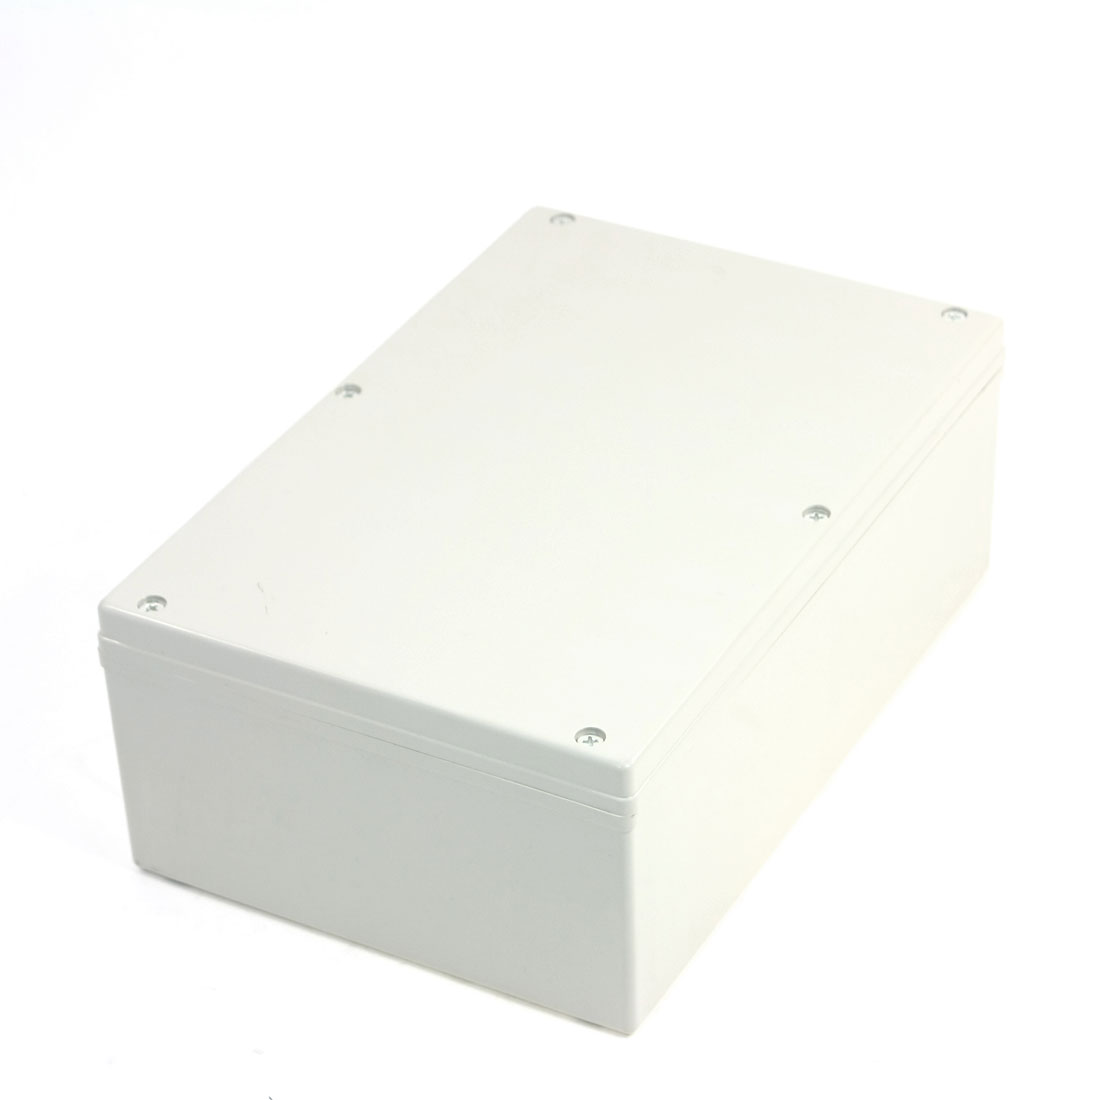 240mmx160mmx90mm-Waterproof-Plastic-Enclosure-Case-Power-Junction-Box